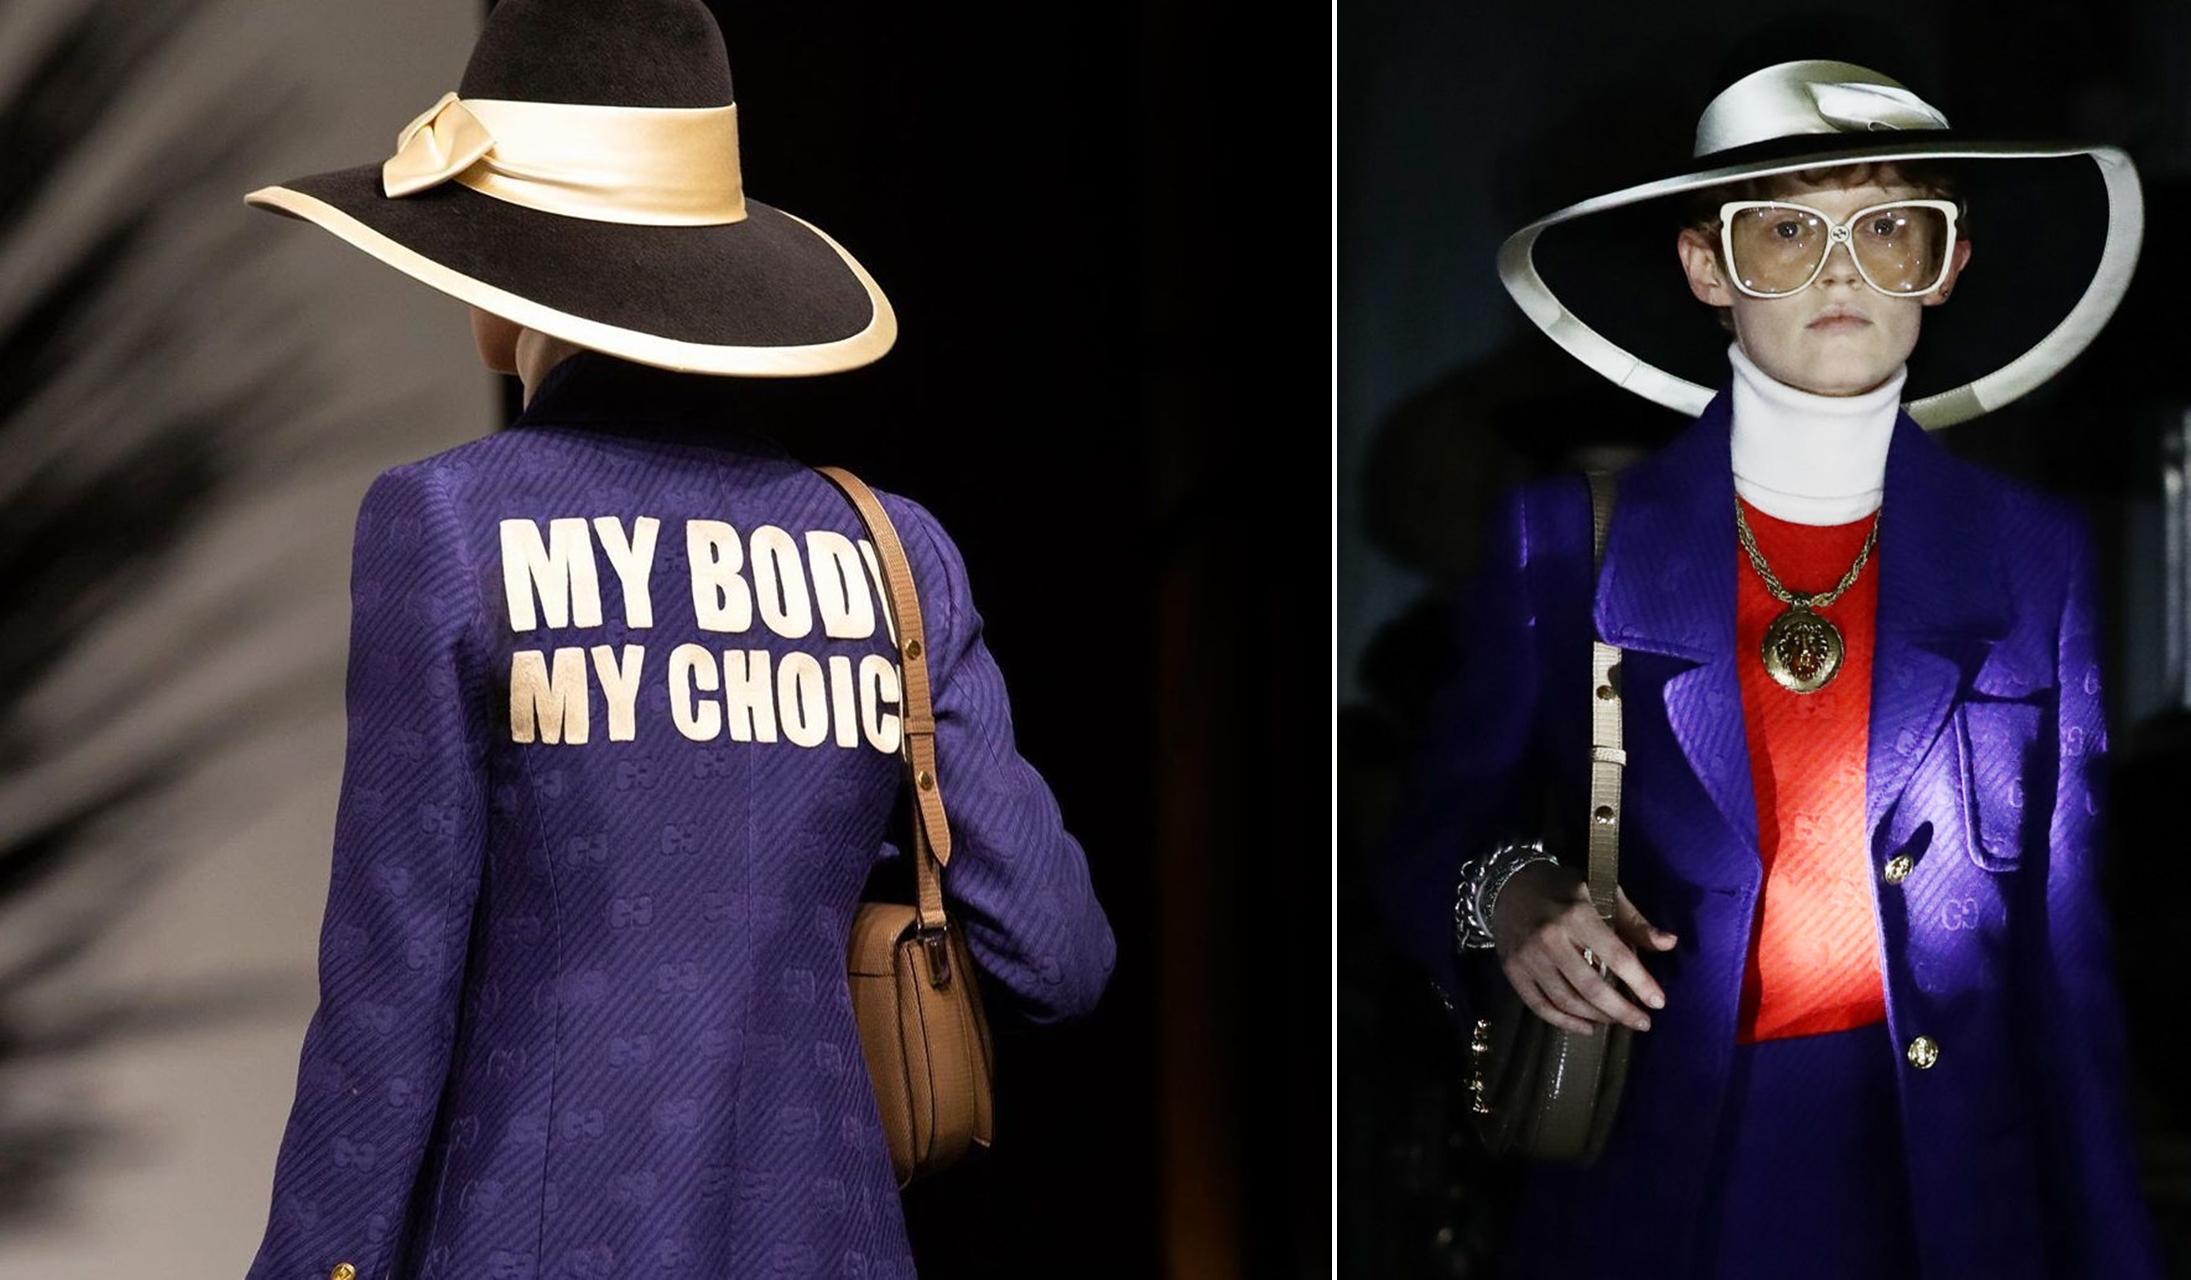 From Gucci's Pro-Choice Runway Statement to a Strike at the Louvre: The Best and Worst of the Art World This Week